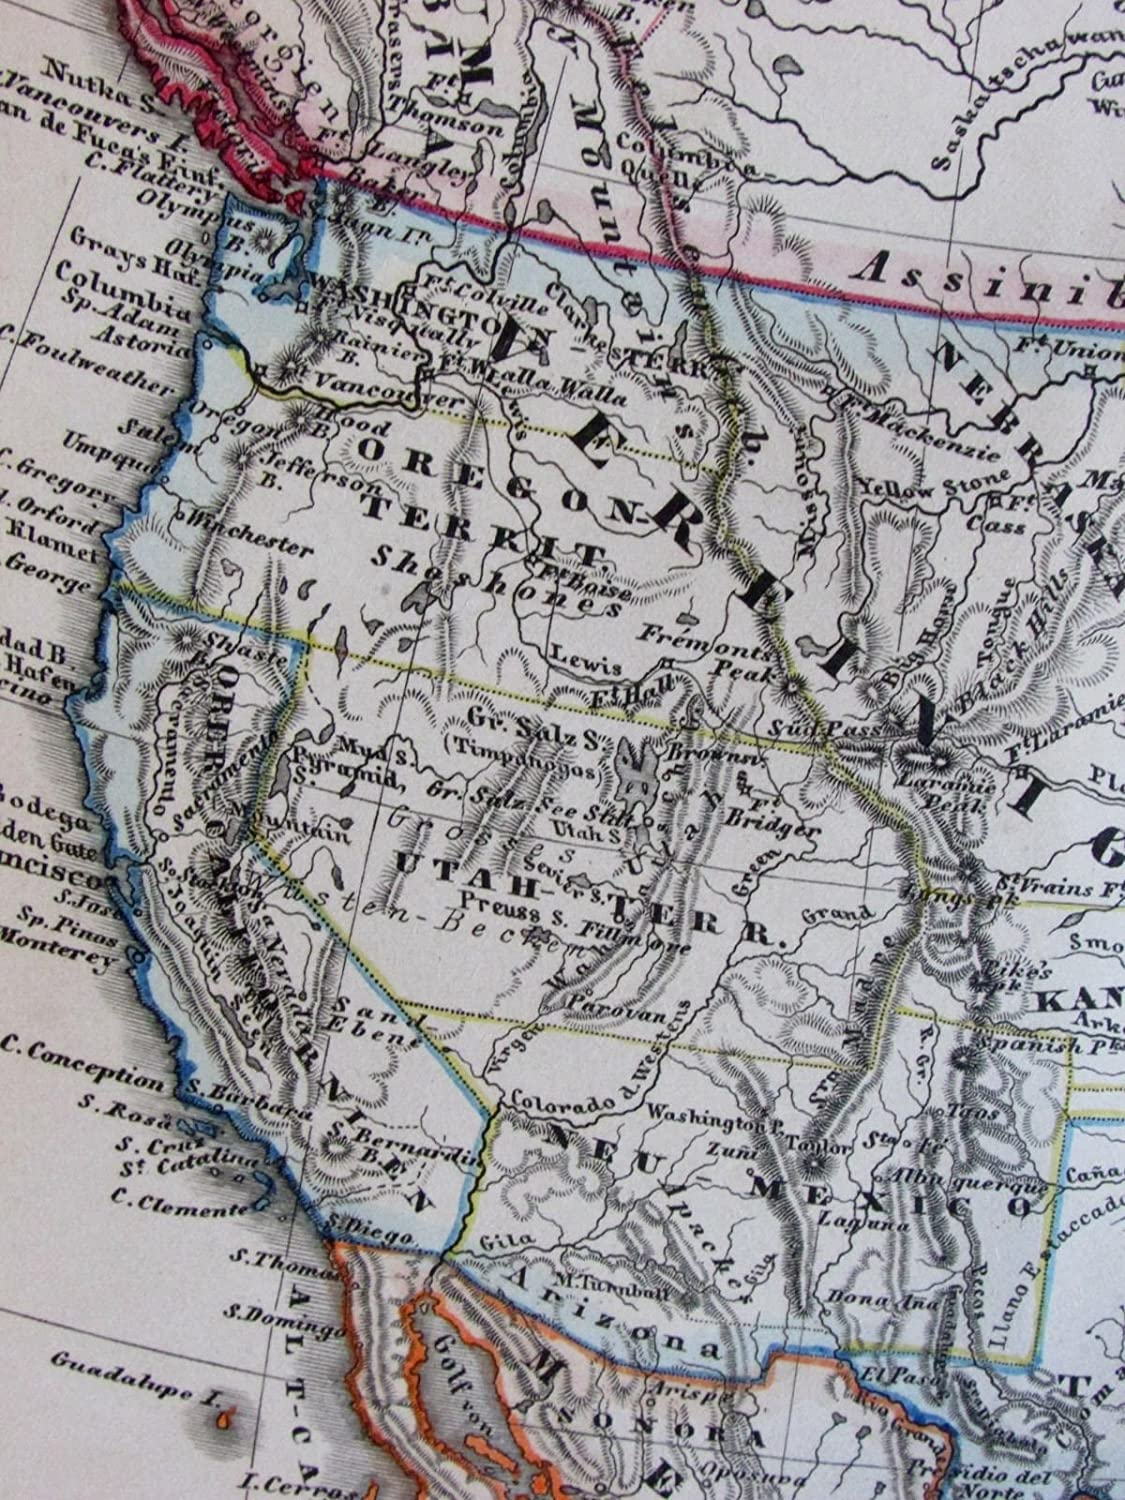 Amazon.com: Territorial United States transitional North ... on map of civil war 1860, map of usa in 1860, map of religion in 1860, map of the united states 1860, map of prussia 1860, map of boston 1860, map of kansas 1860, map of chicago 1860, map of alabama 1860, map of western states in 1860, map of u.s. 1860,